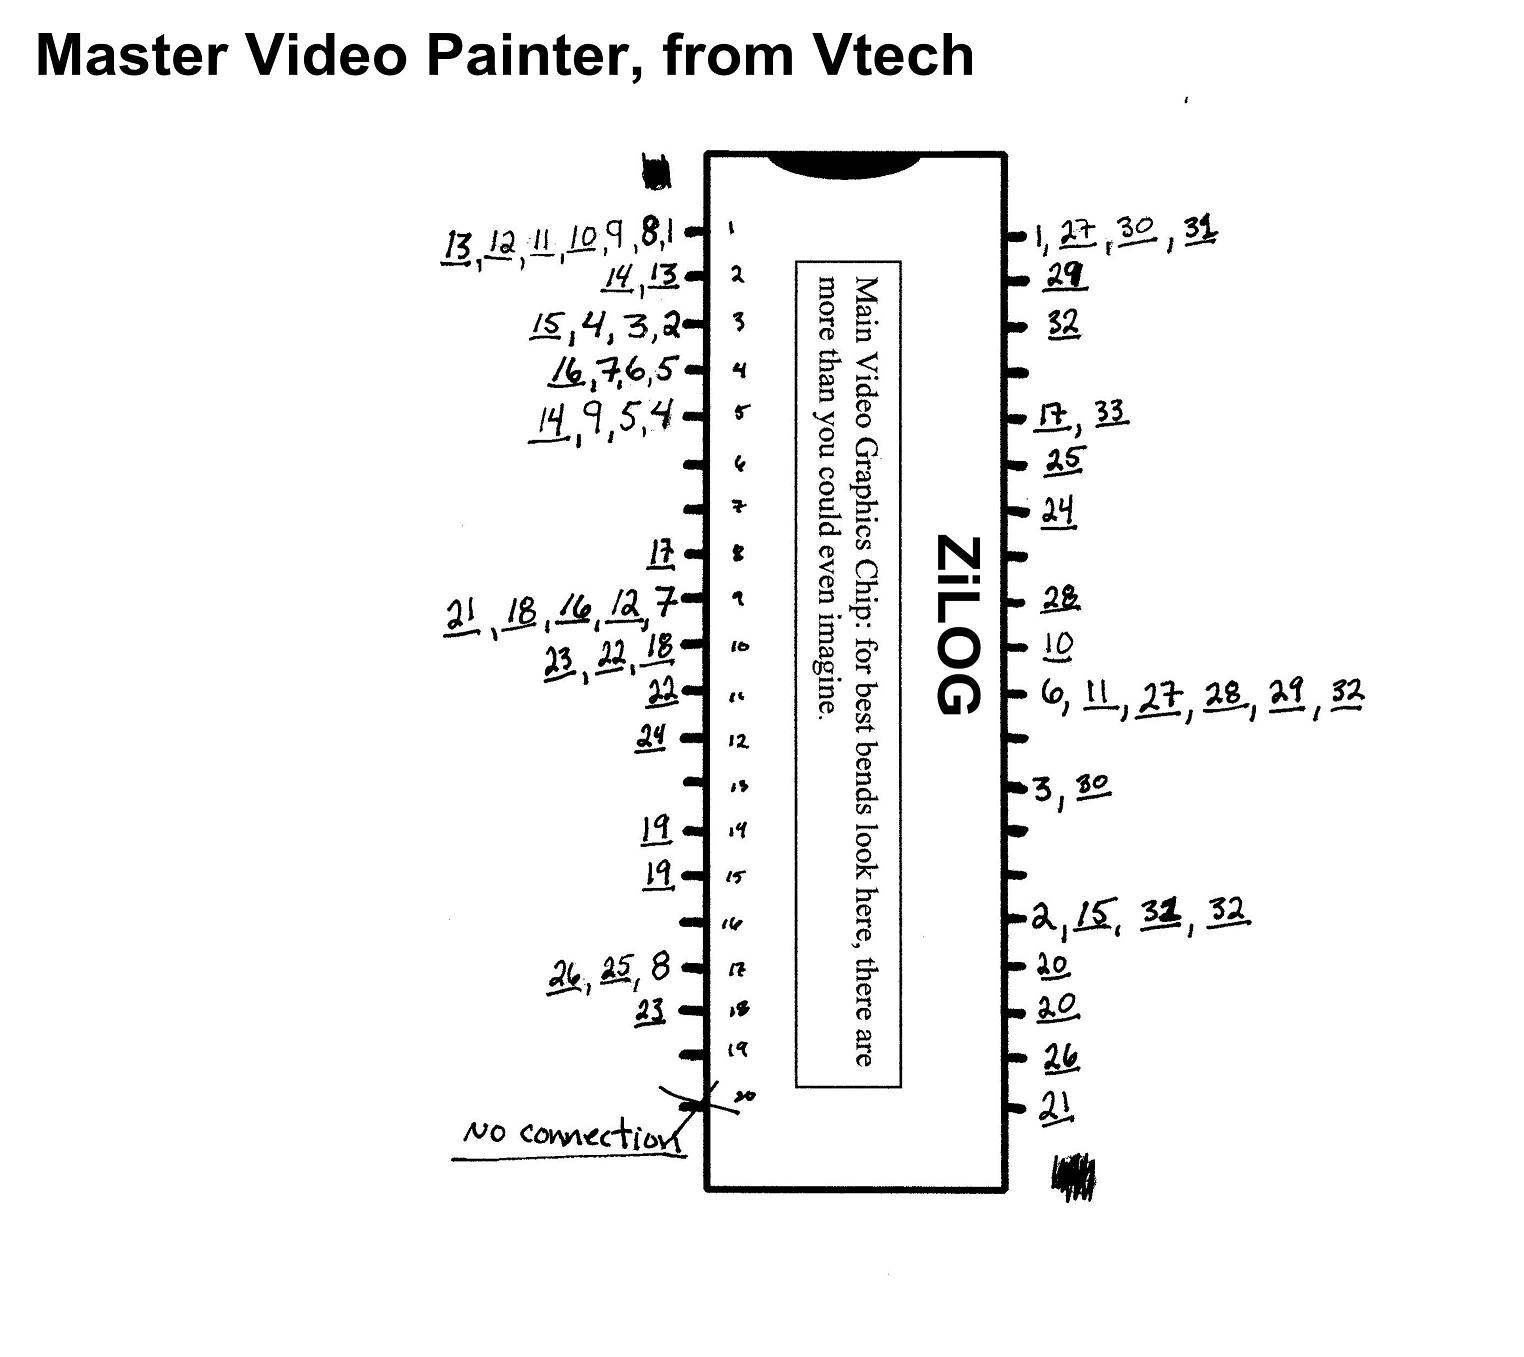 v-tech video painter  circuit bending